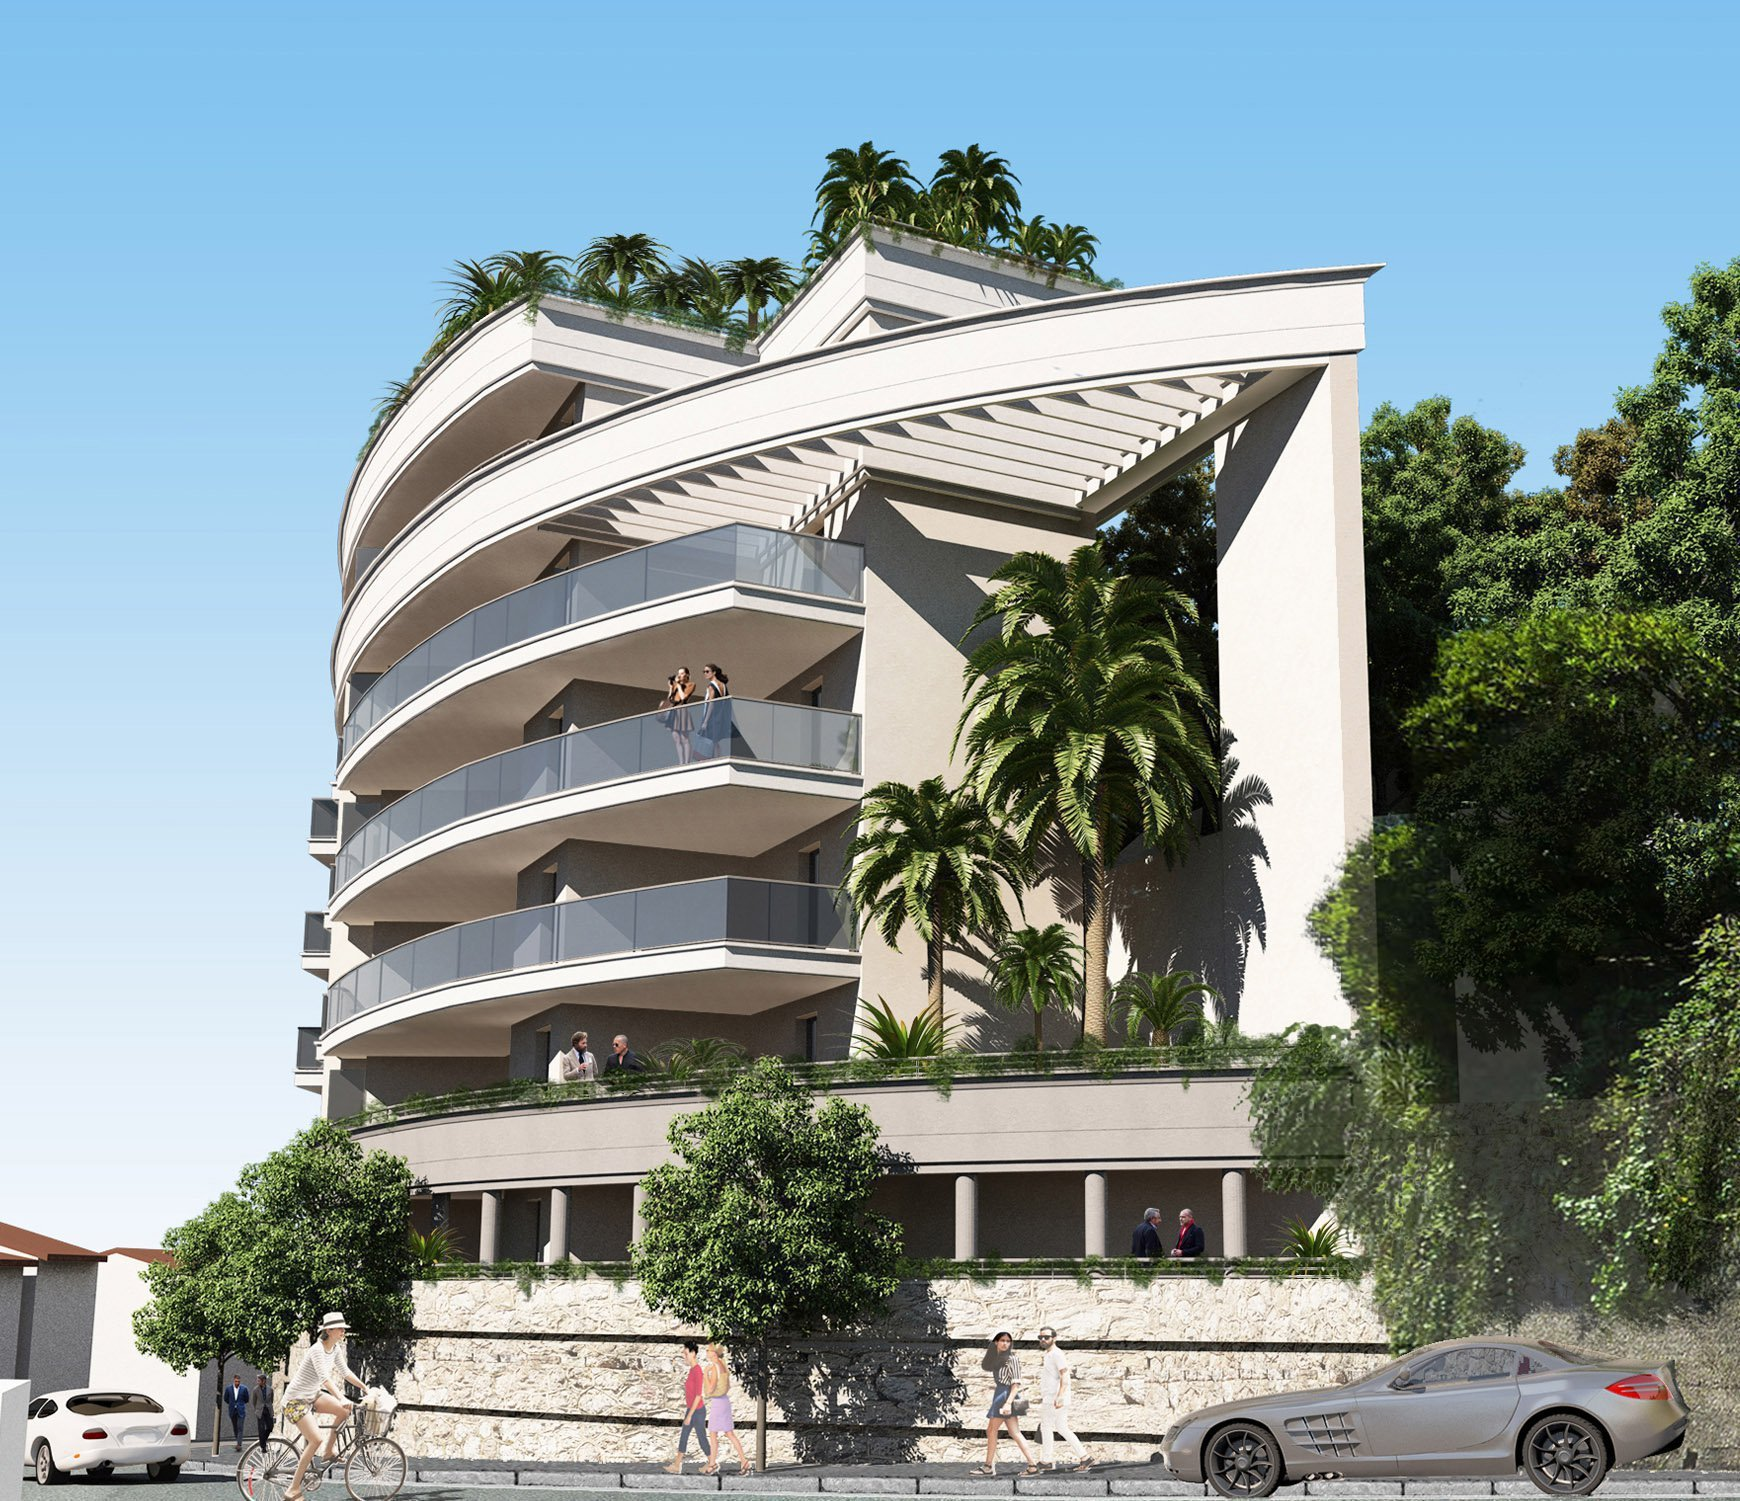 BEAUSOLEIL - French Riviera - 1 Bed apartment with sea view and large terrace